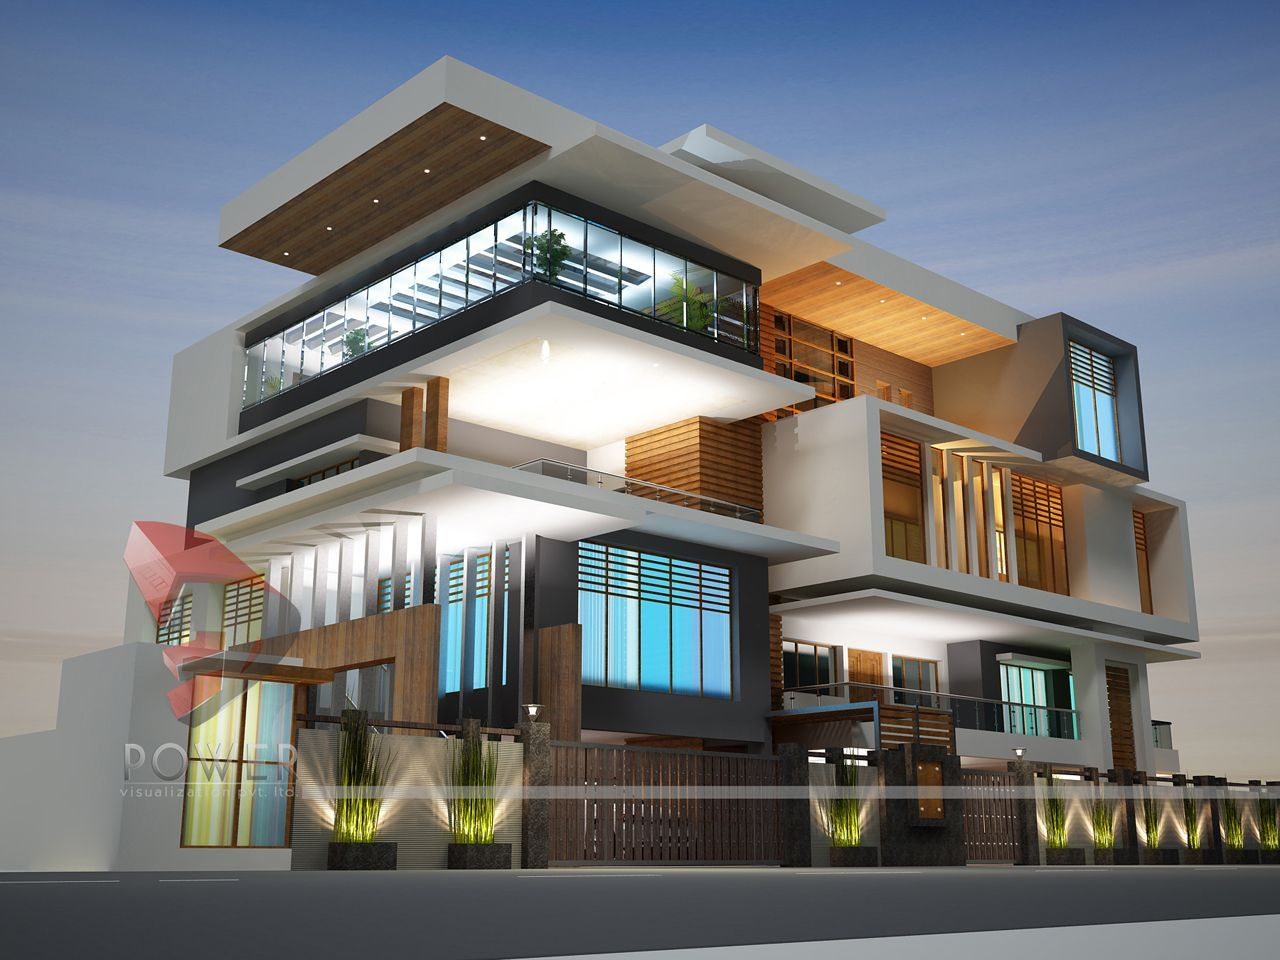 Modern house design in india architecture india modern for Modern small home designs india